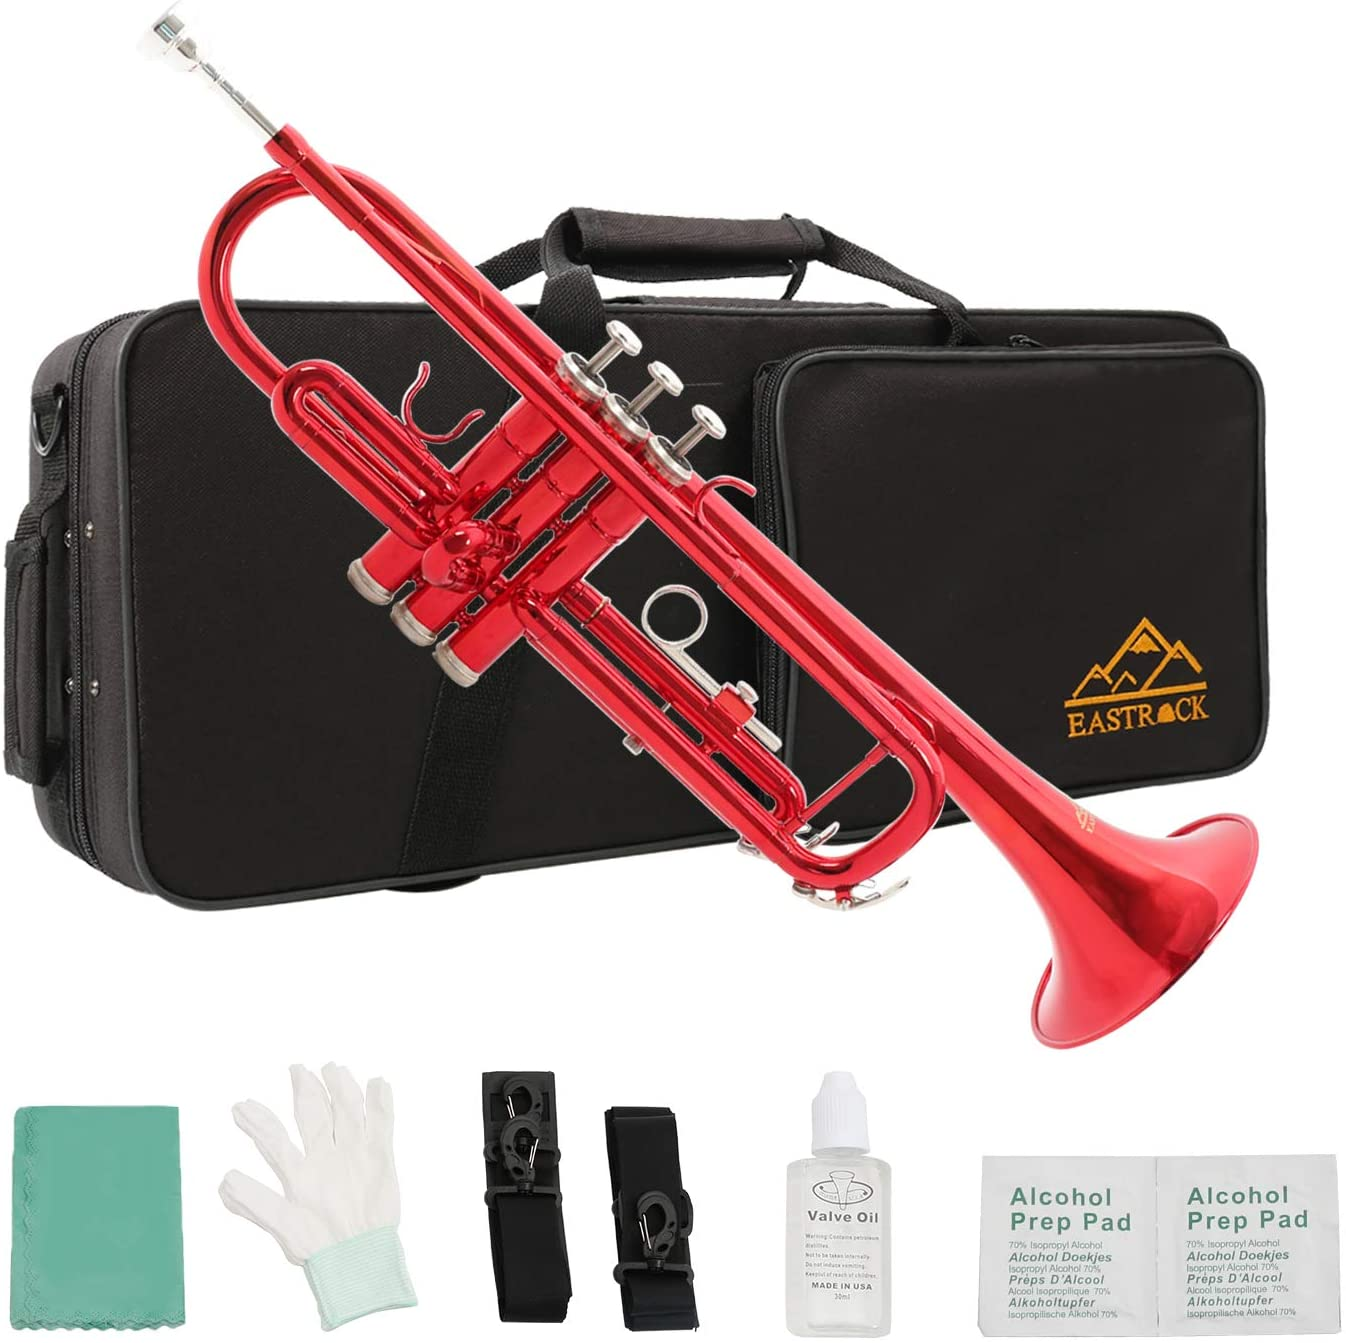 Eastrock Standard Brass Bb Trumpet for Student Beginner Brass Instrument with Hard Case, Gloves, 7C Mouthpiece and Trumpet Cleaning Kit (Red)